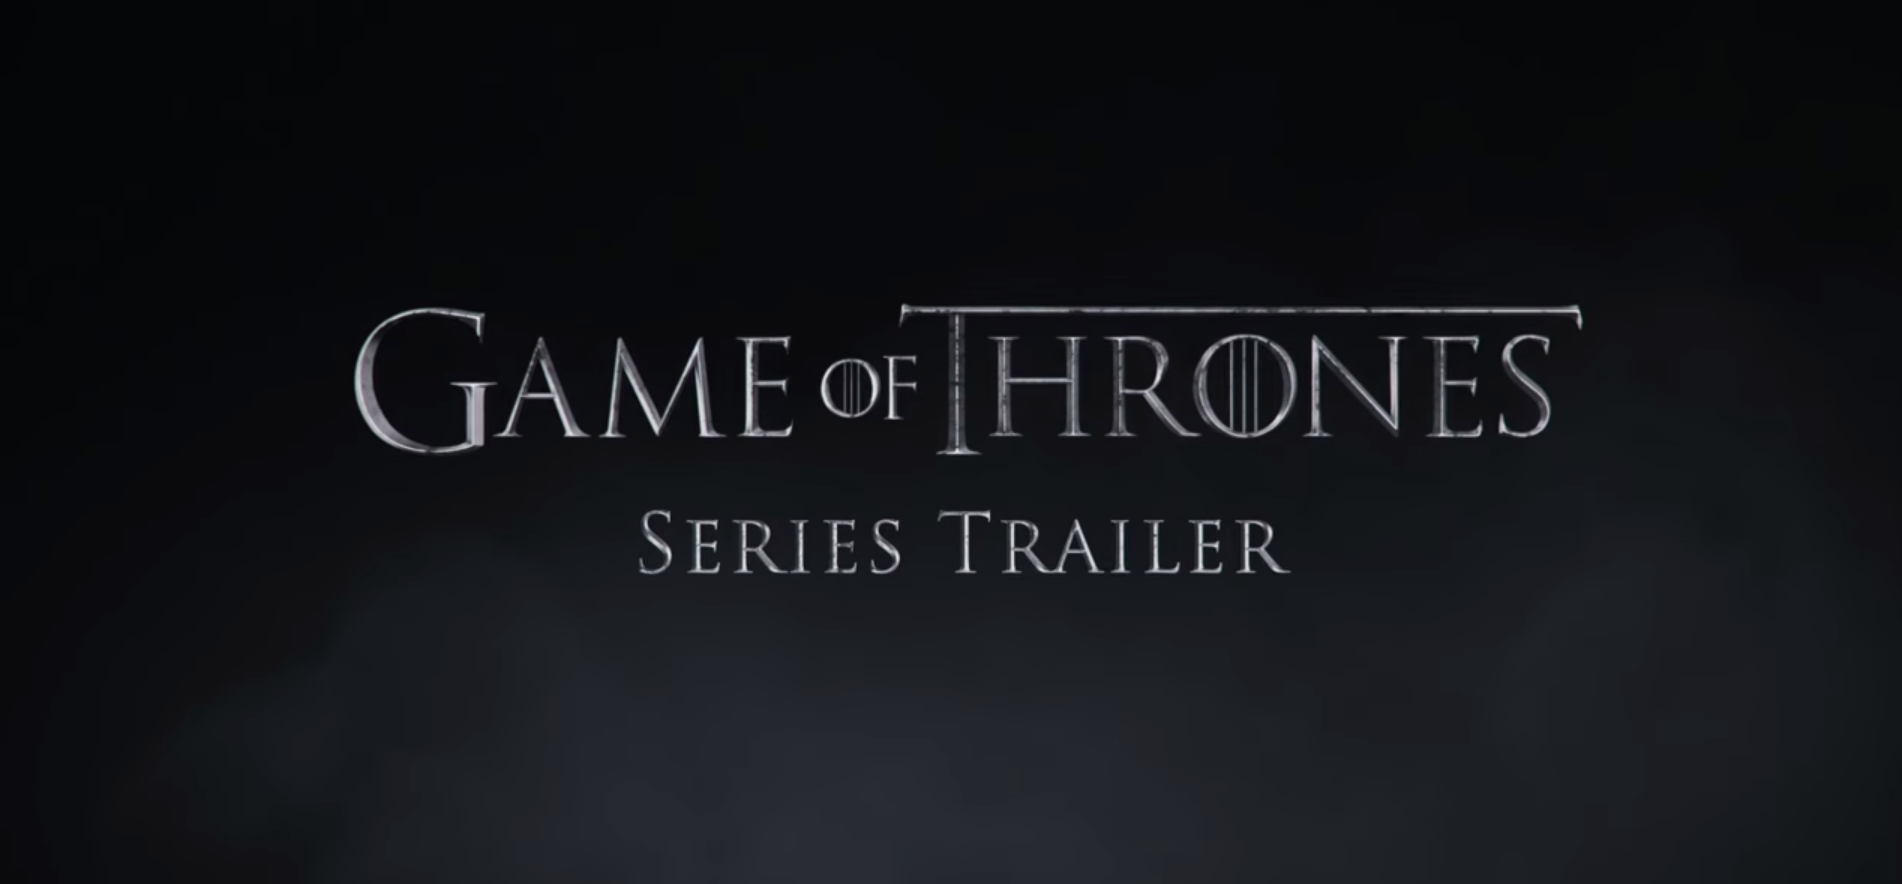 Game of Thrones HBO Series Trailer